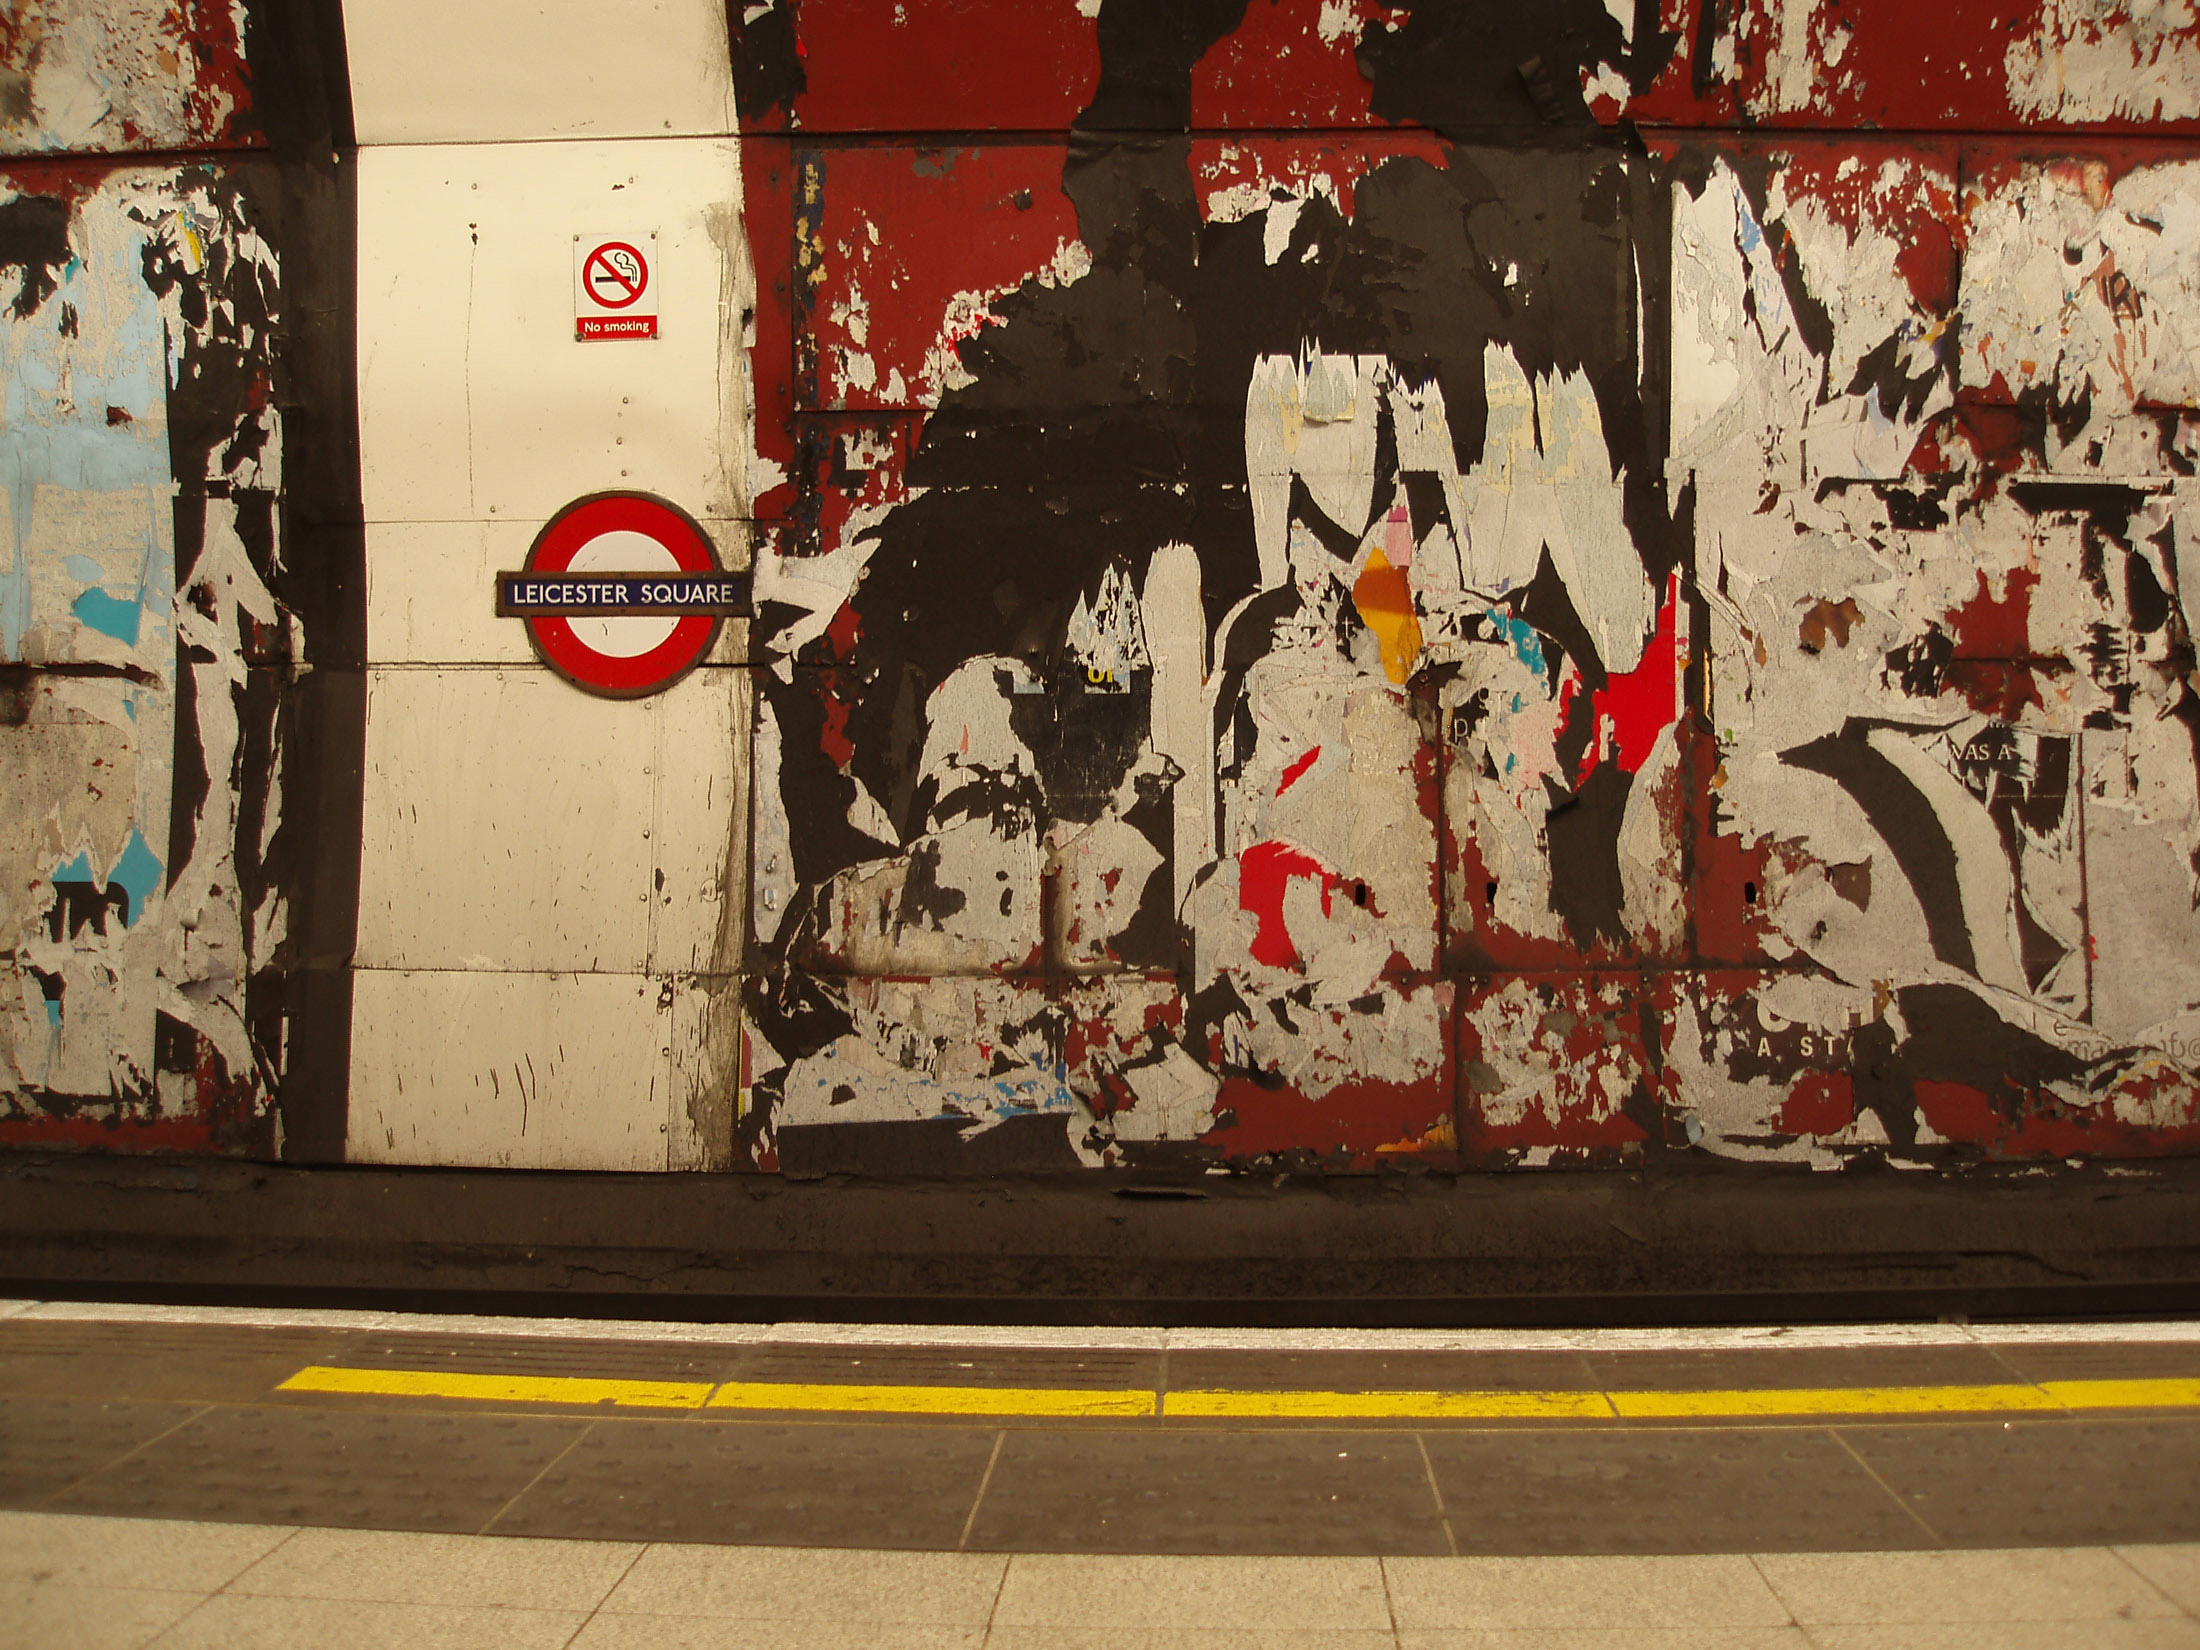 Grungy walls on the platform at the tune station London underground with remnants of posters and advertising and flaking paint